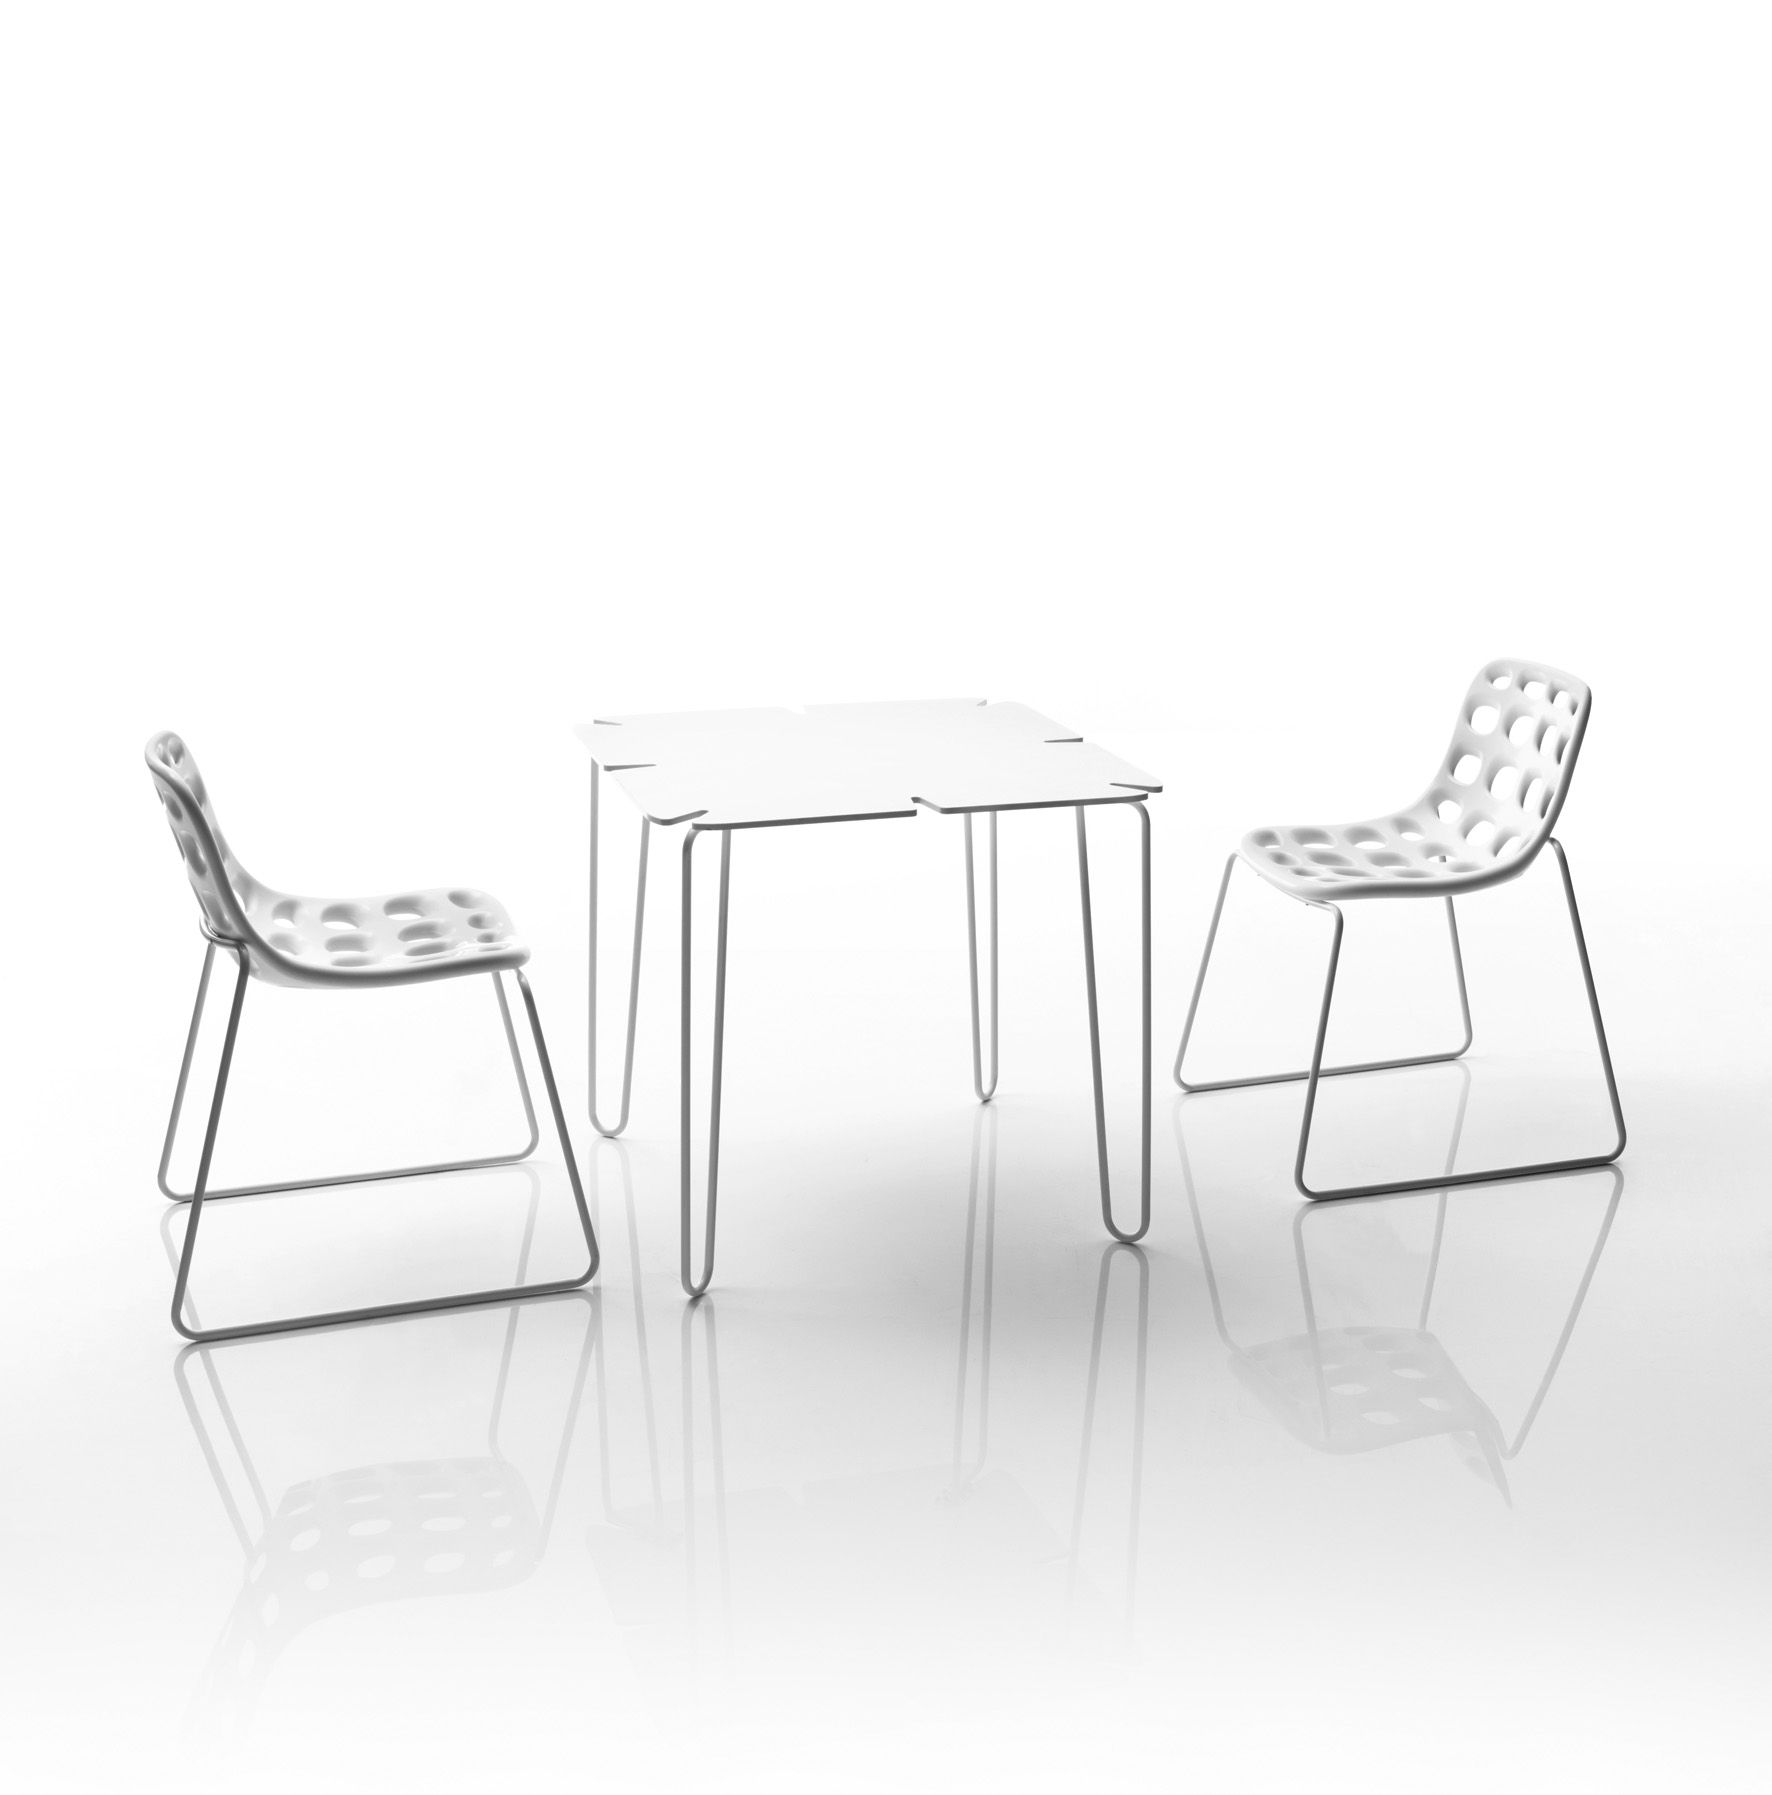 plastic chairs with stainless steel legs unfinished wood chips stacking chair and metal white by myyour